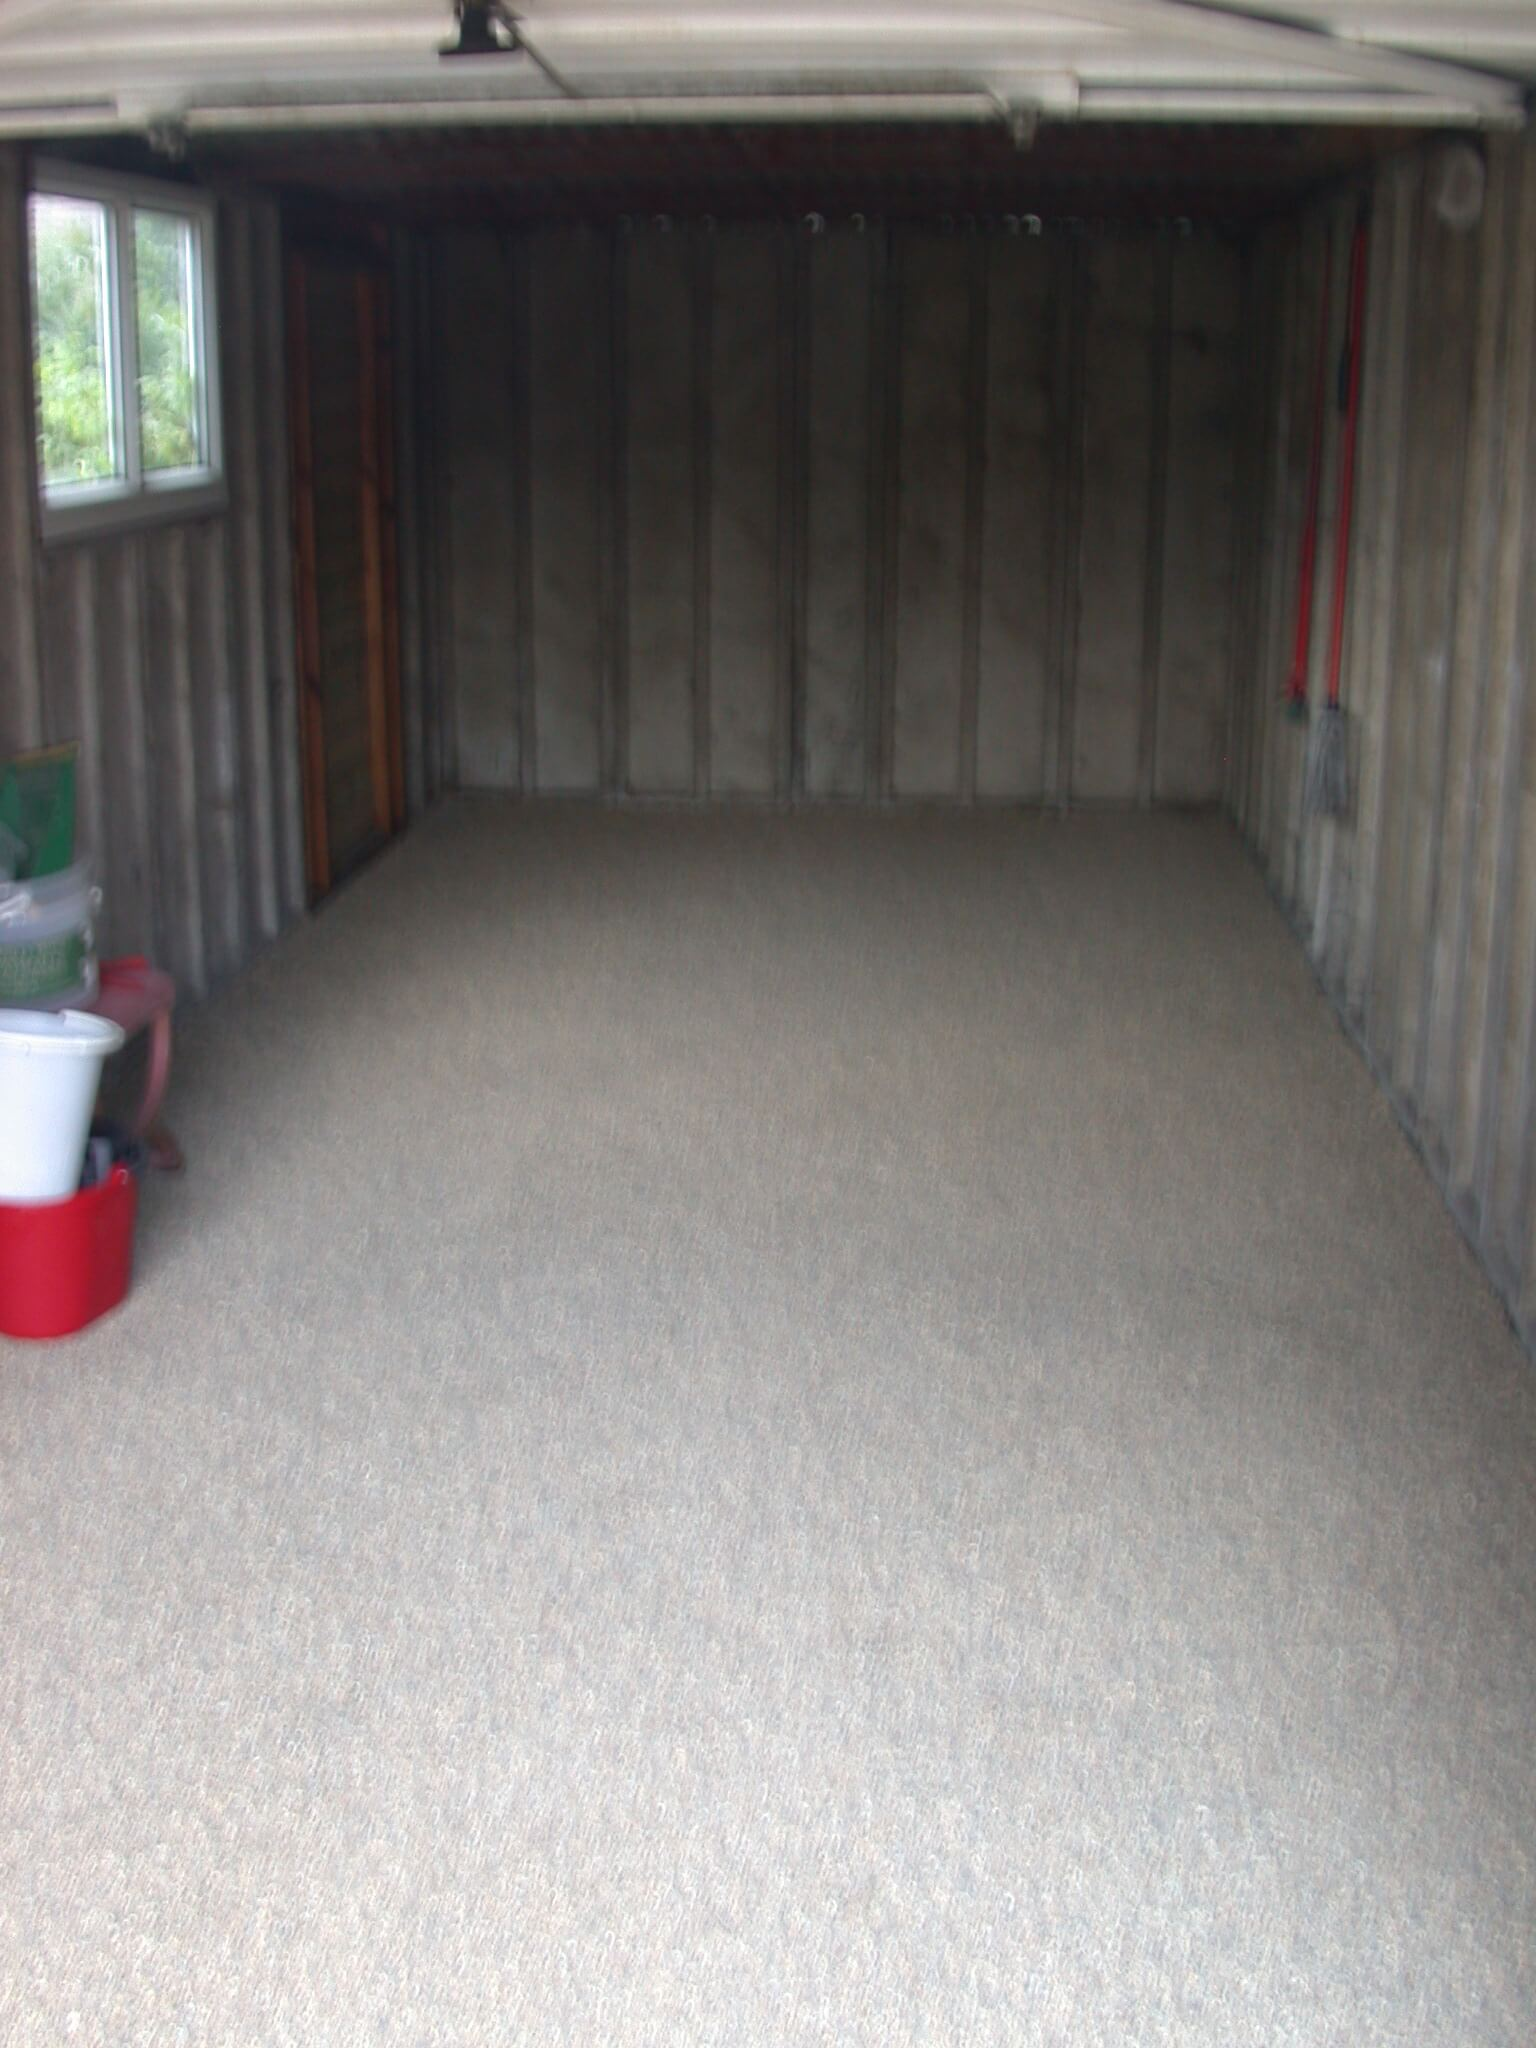 Garage Plastic Flooring For Dining Room Carpet: Resin Bonded Aggregate By Drive-Cote Ltd 12 Years Of